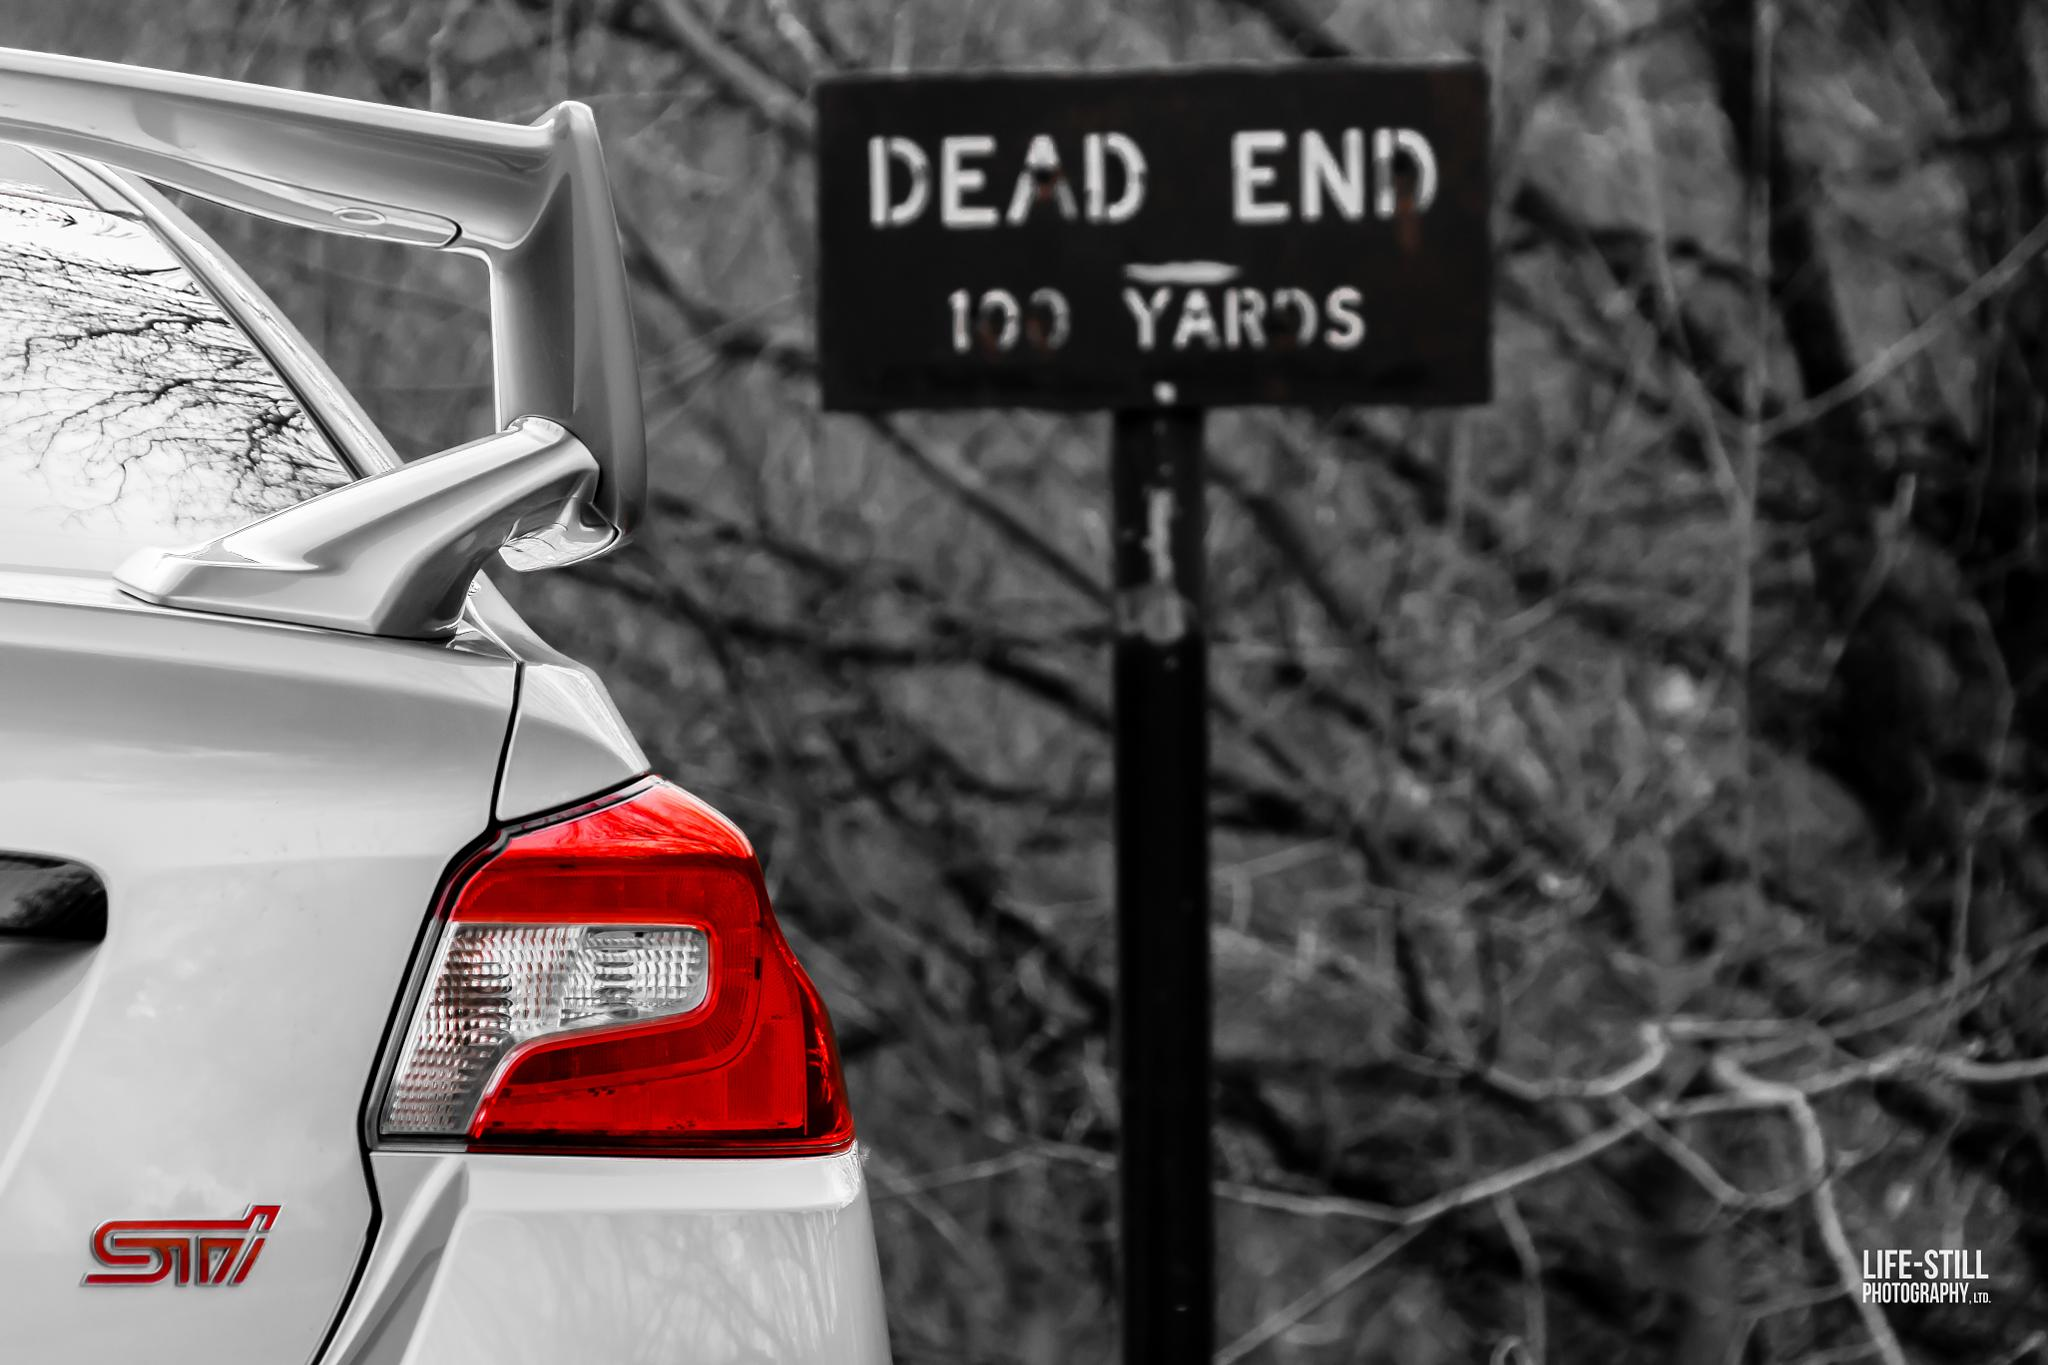 The End of the Road by jp.spicer